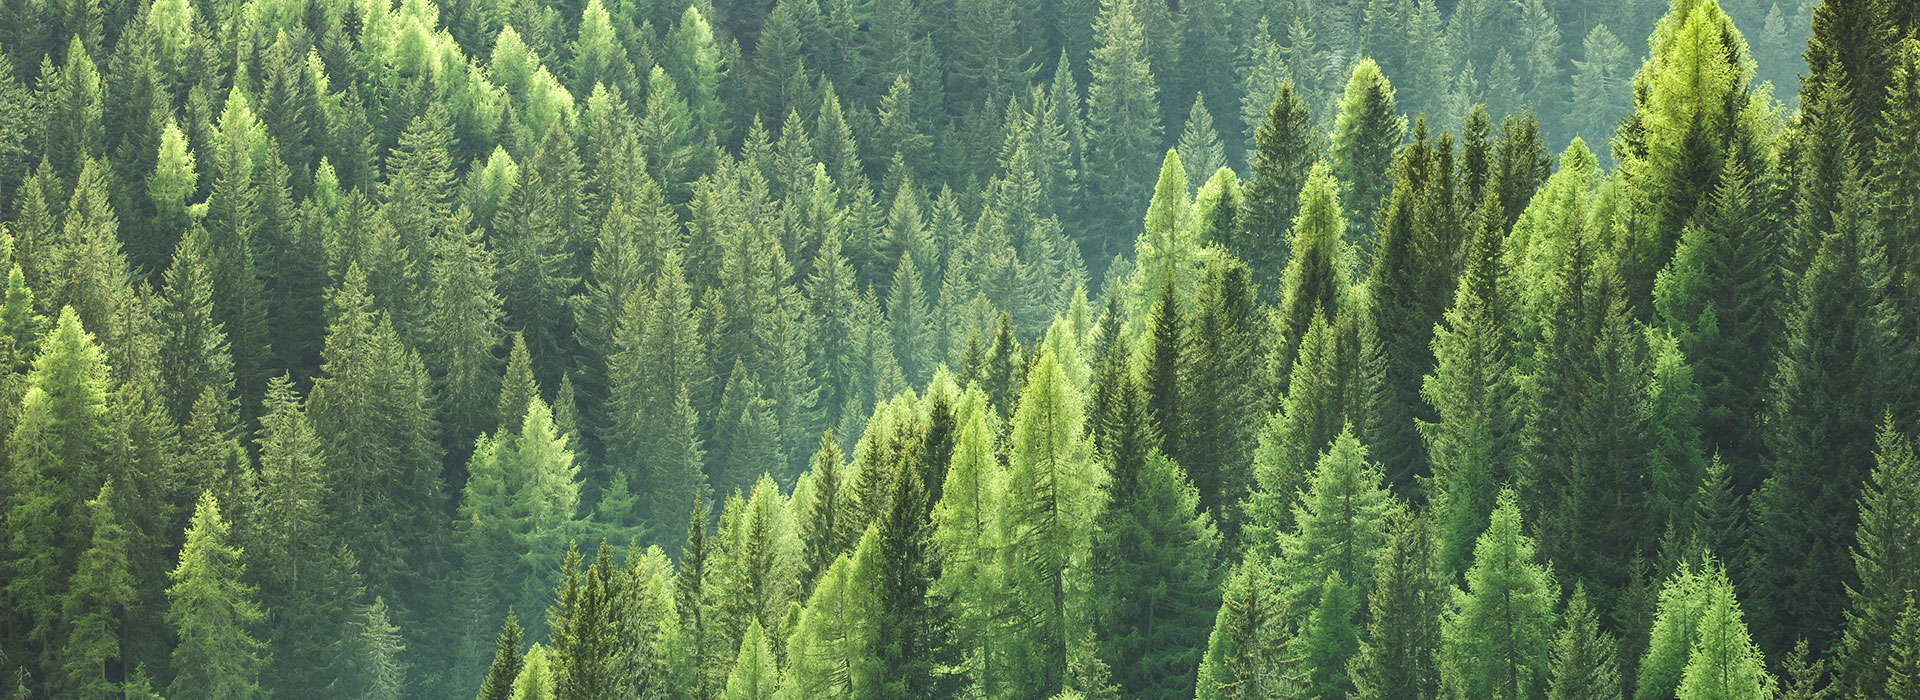 Formica Group Sustainability trees 1920x700